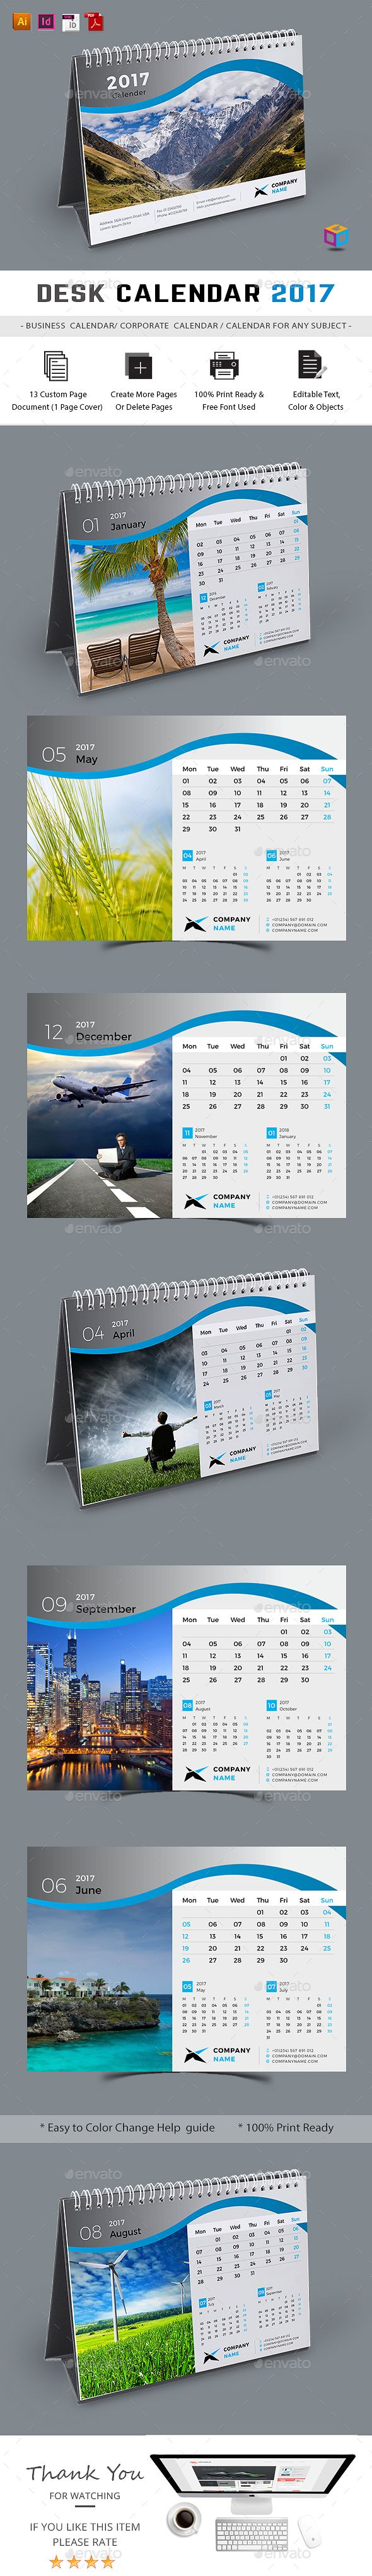 Desk Calendar 2017 Template InDesign INDD, AI Illustrator                                                                                                                                                                                 More